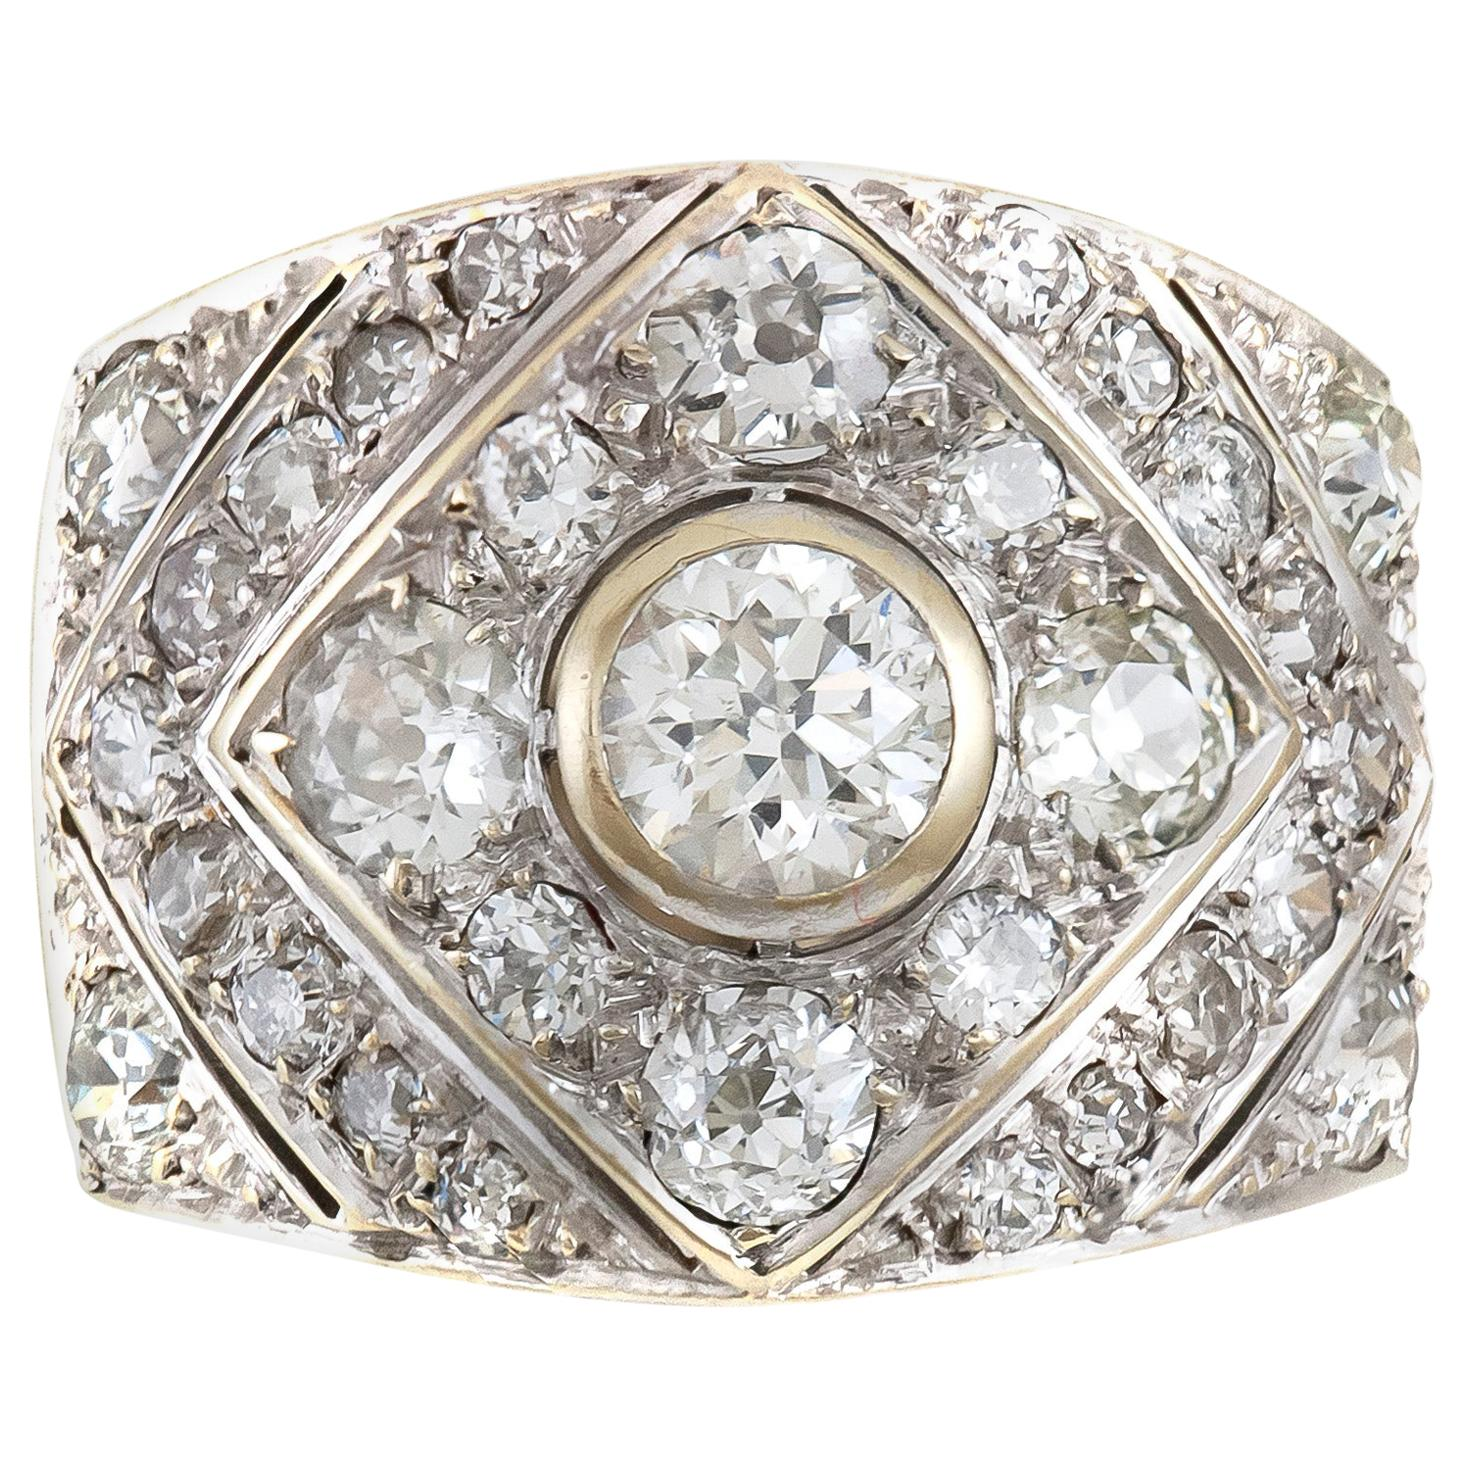 1930s Triangle and Square Platinum with Diamonds Ring